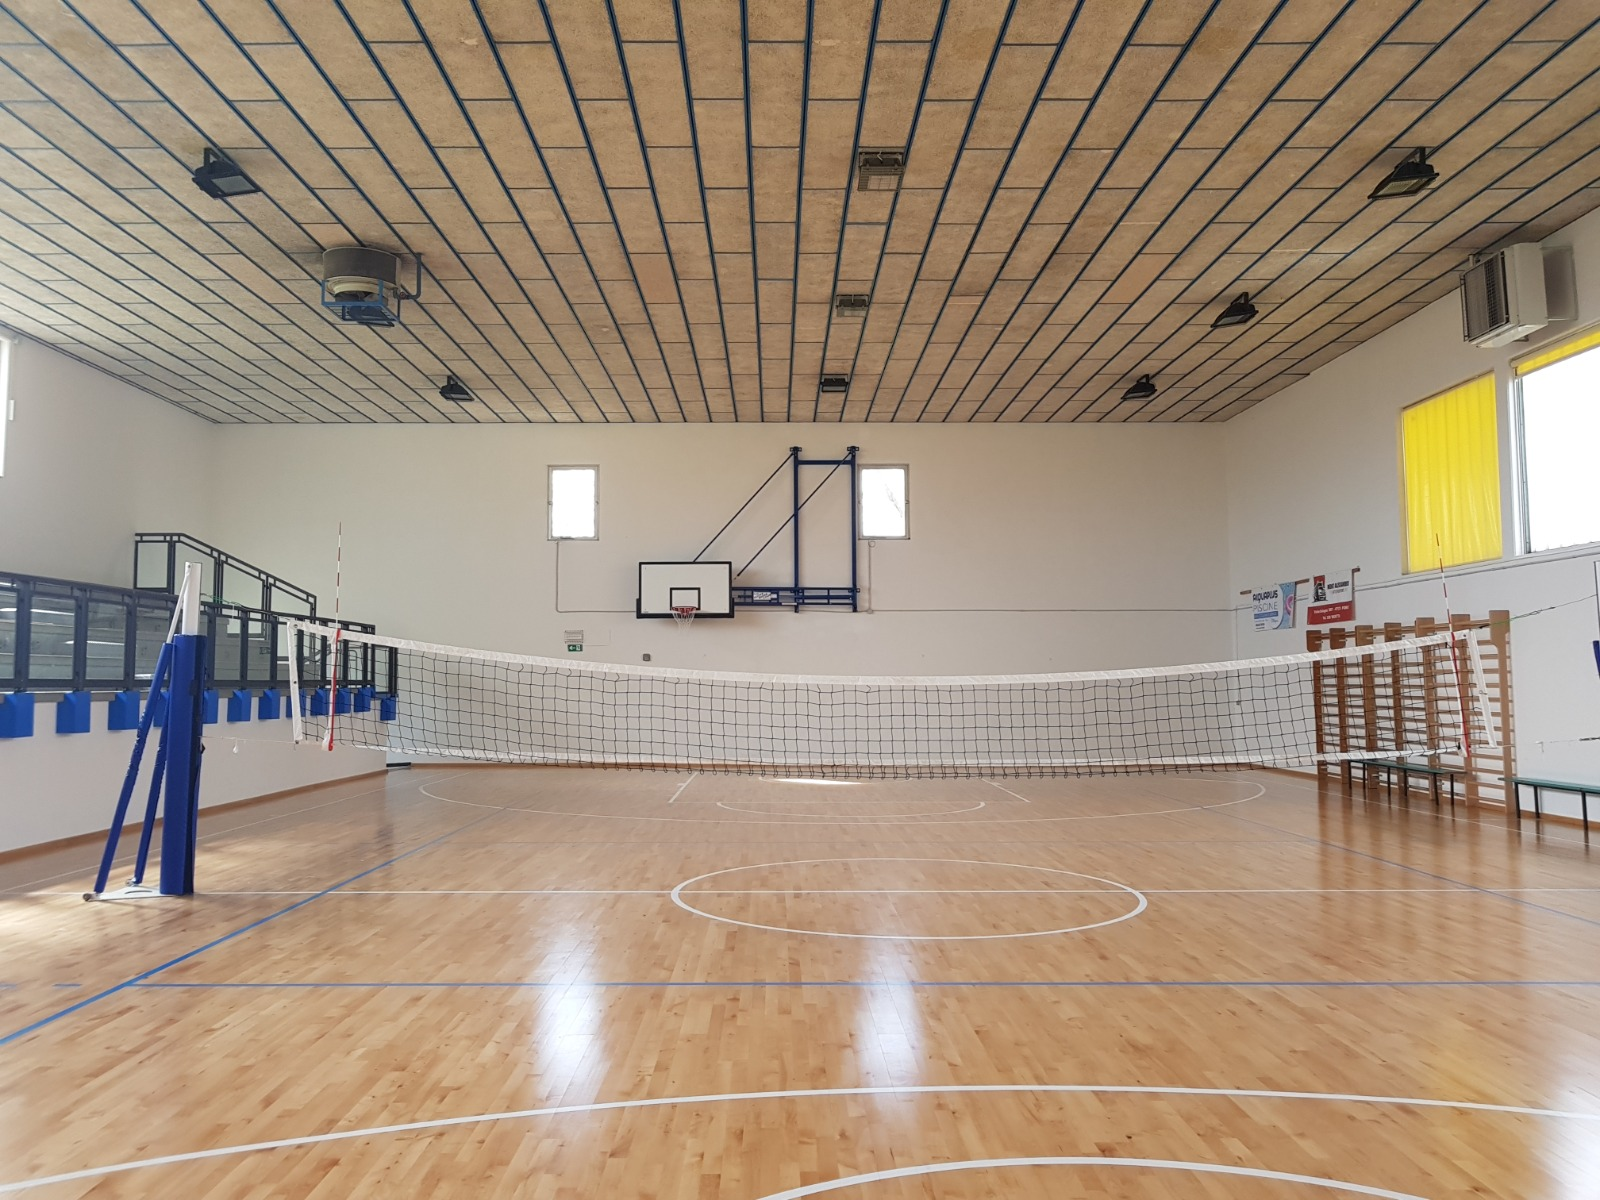 Palestra-basket-volley-pallavolo